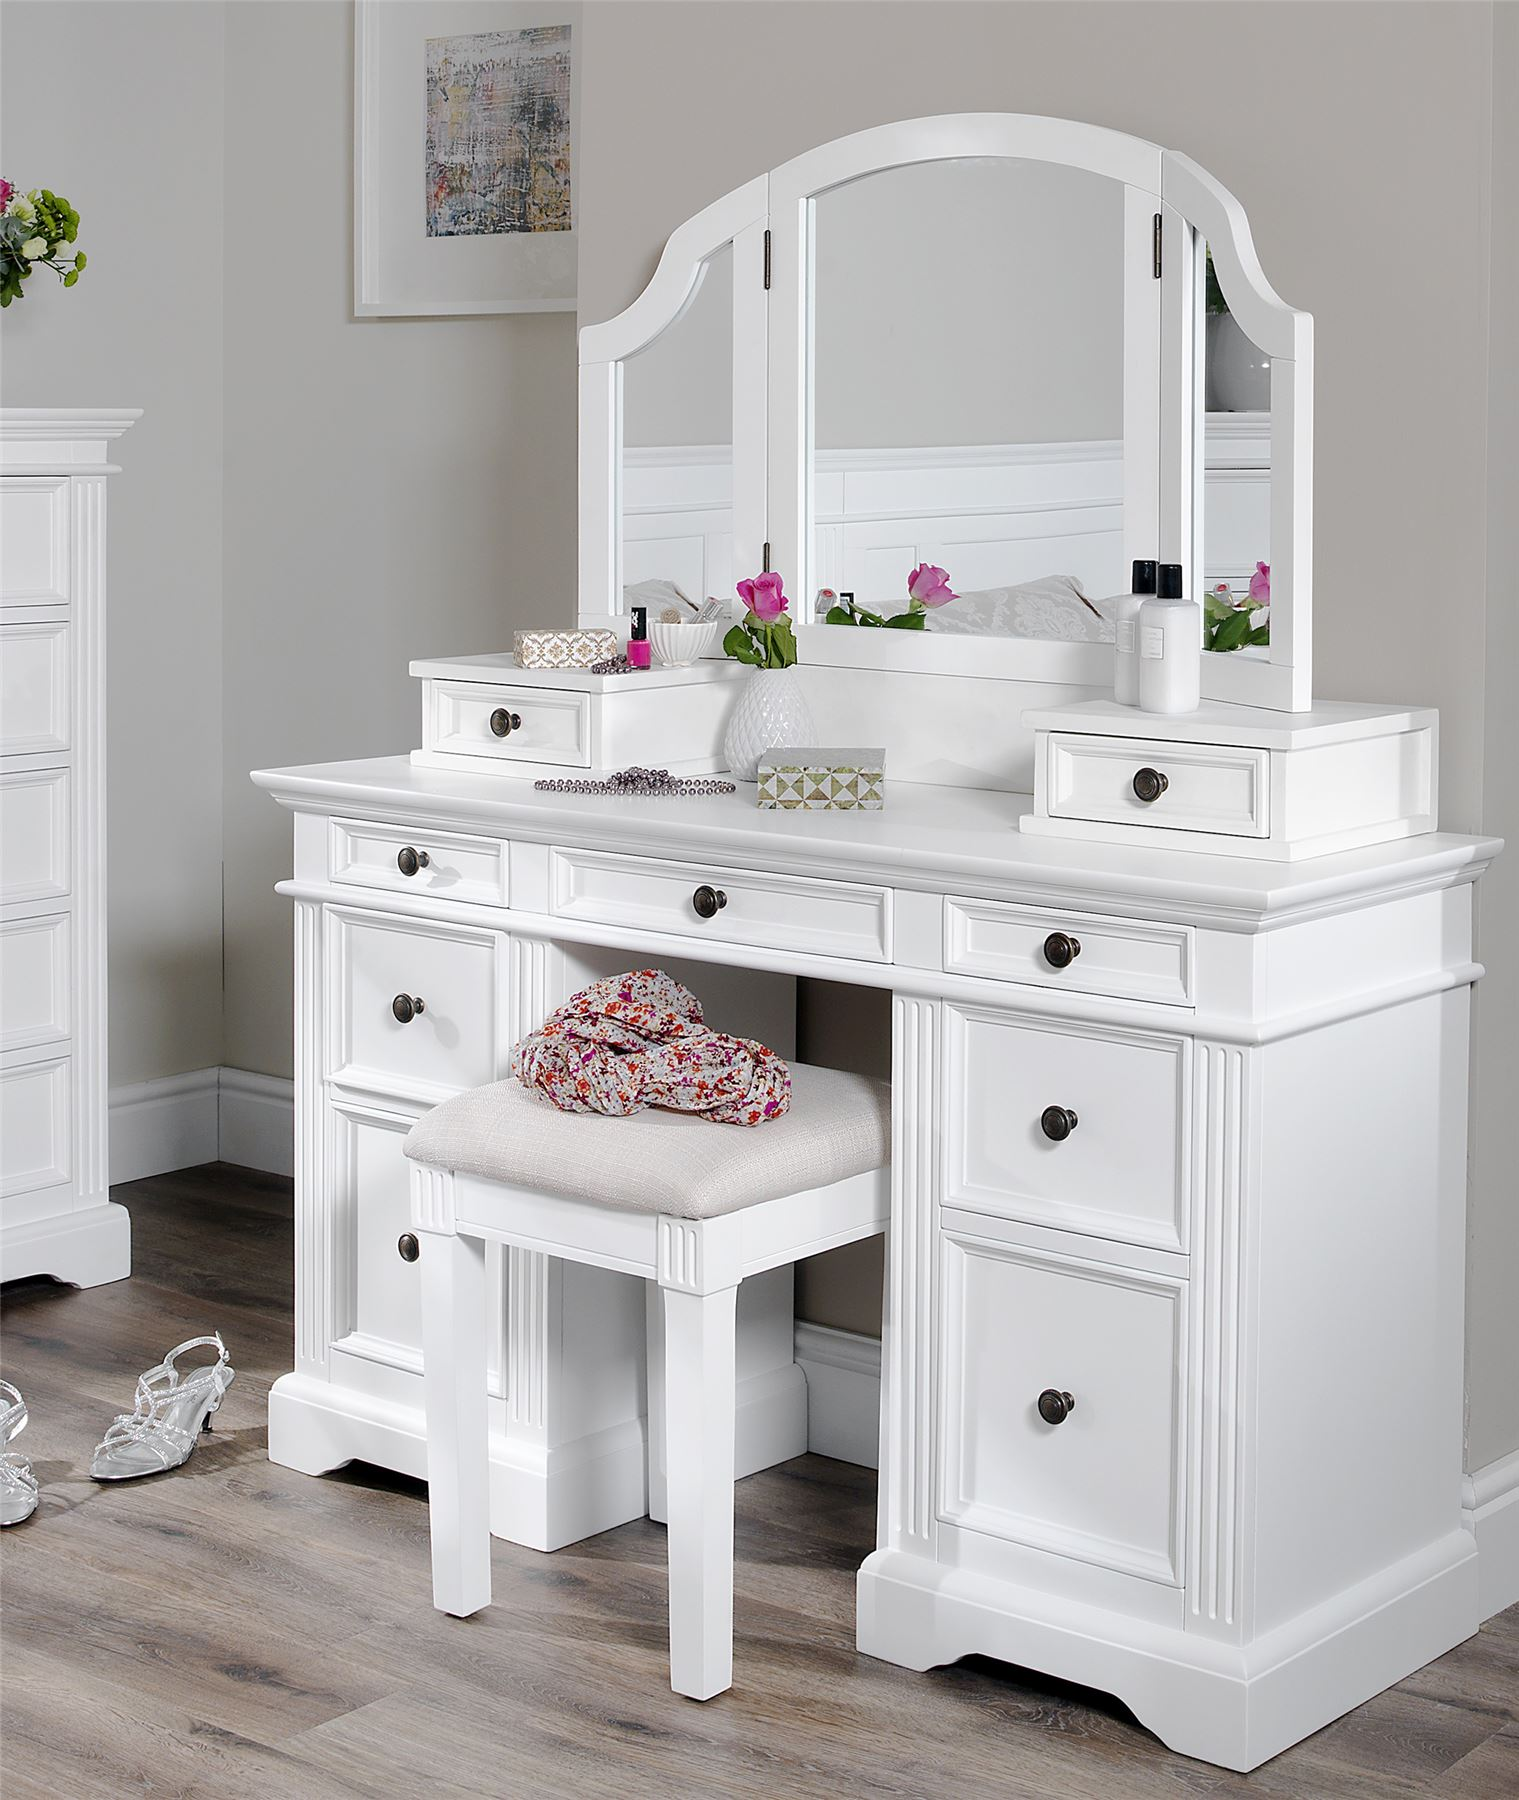 Gainsborough white dressing table set